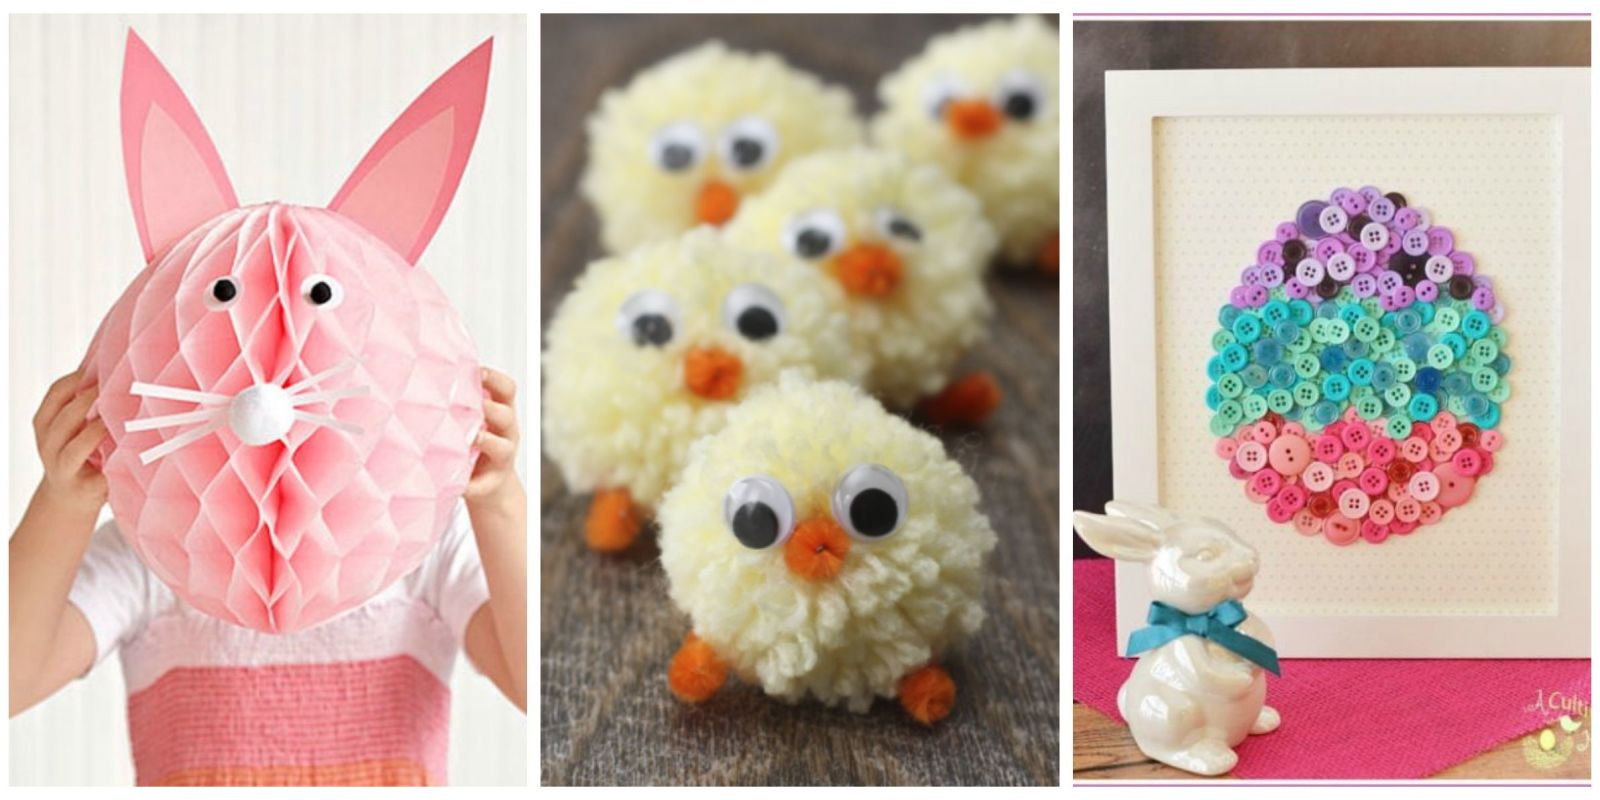 40 easter crafts for kids fun diy ideas for kid friendly for Easter crafts for elementary students